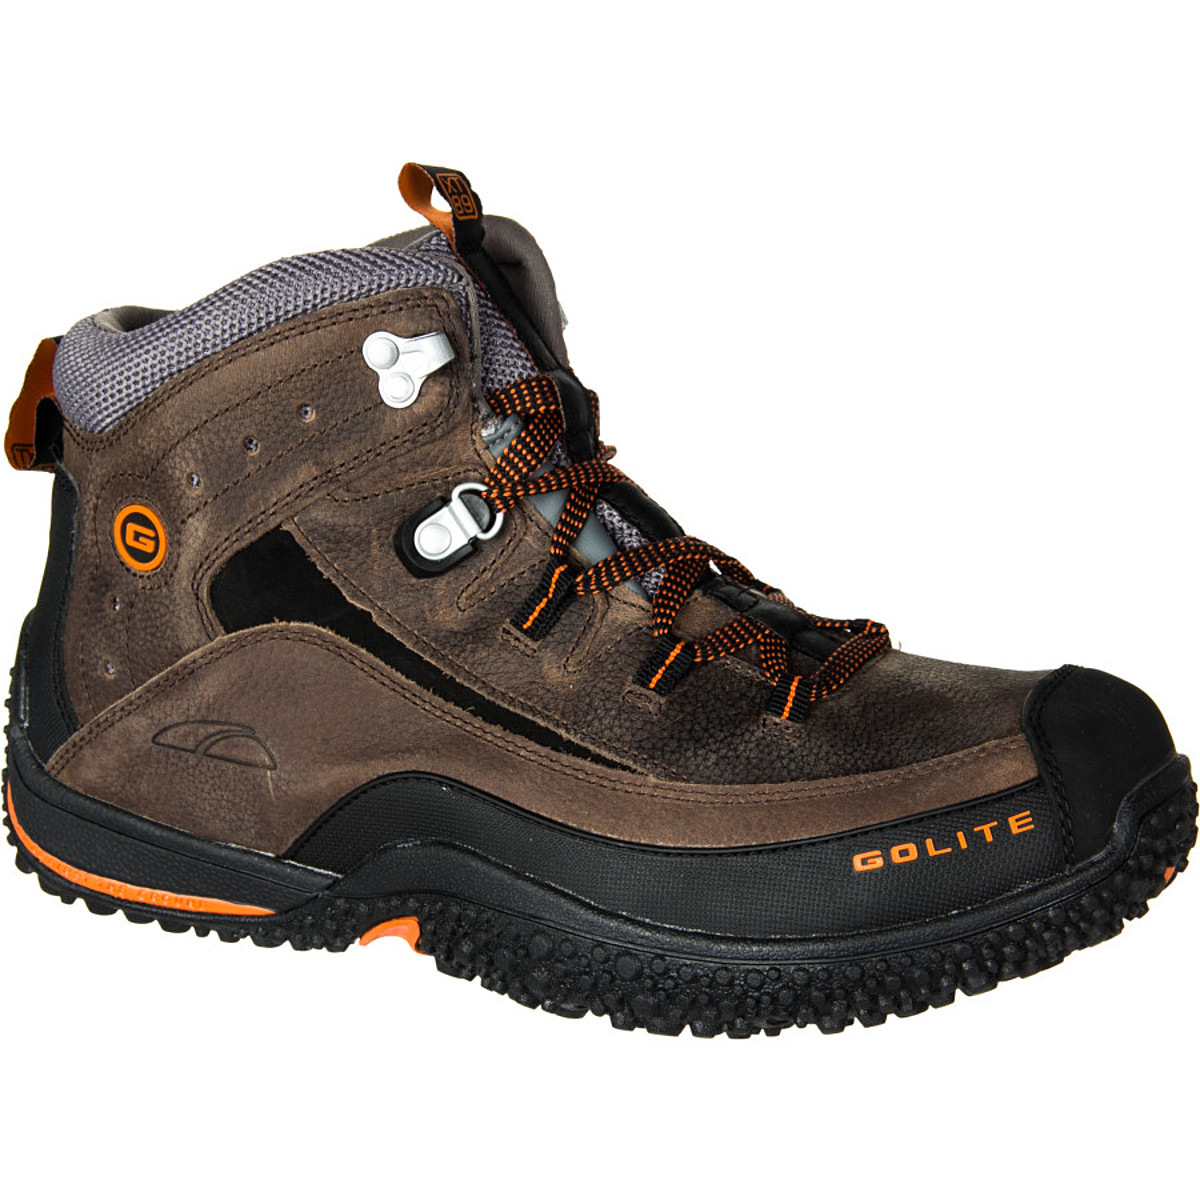 GoLite XT 89 Hiking Boot